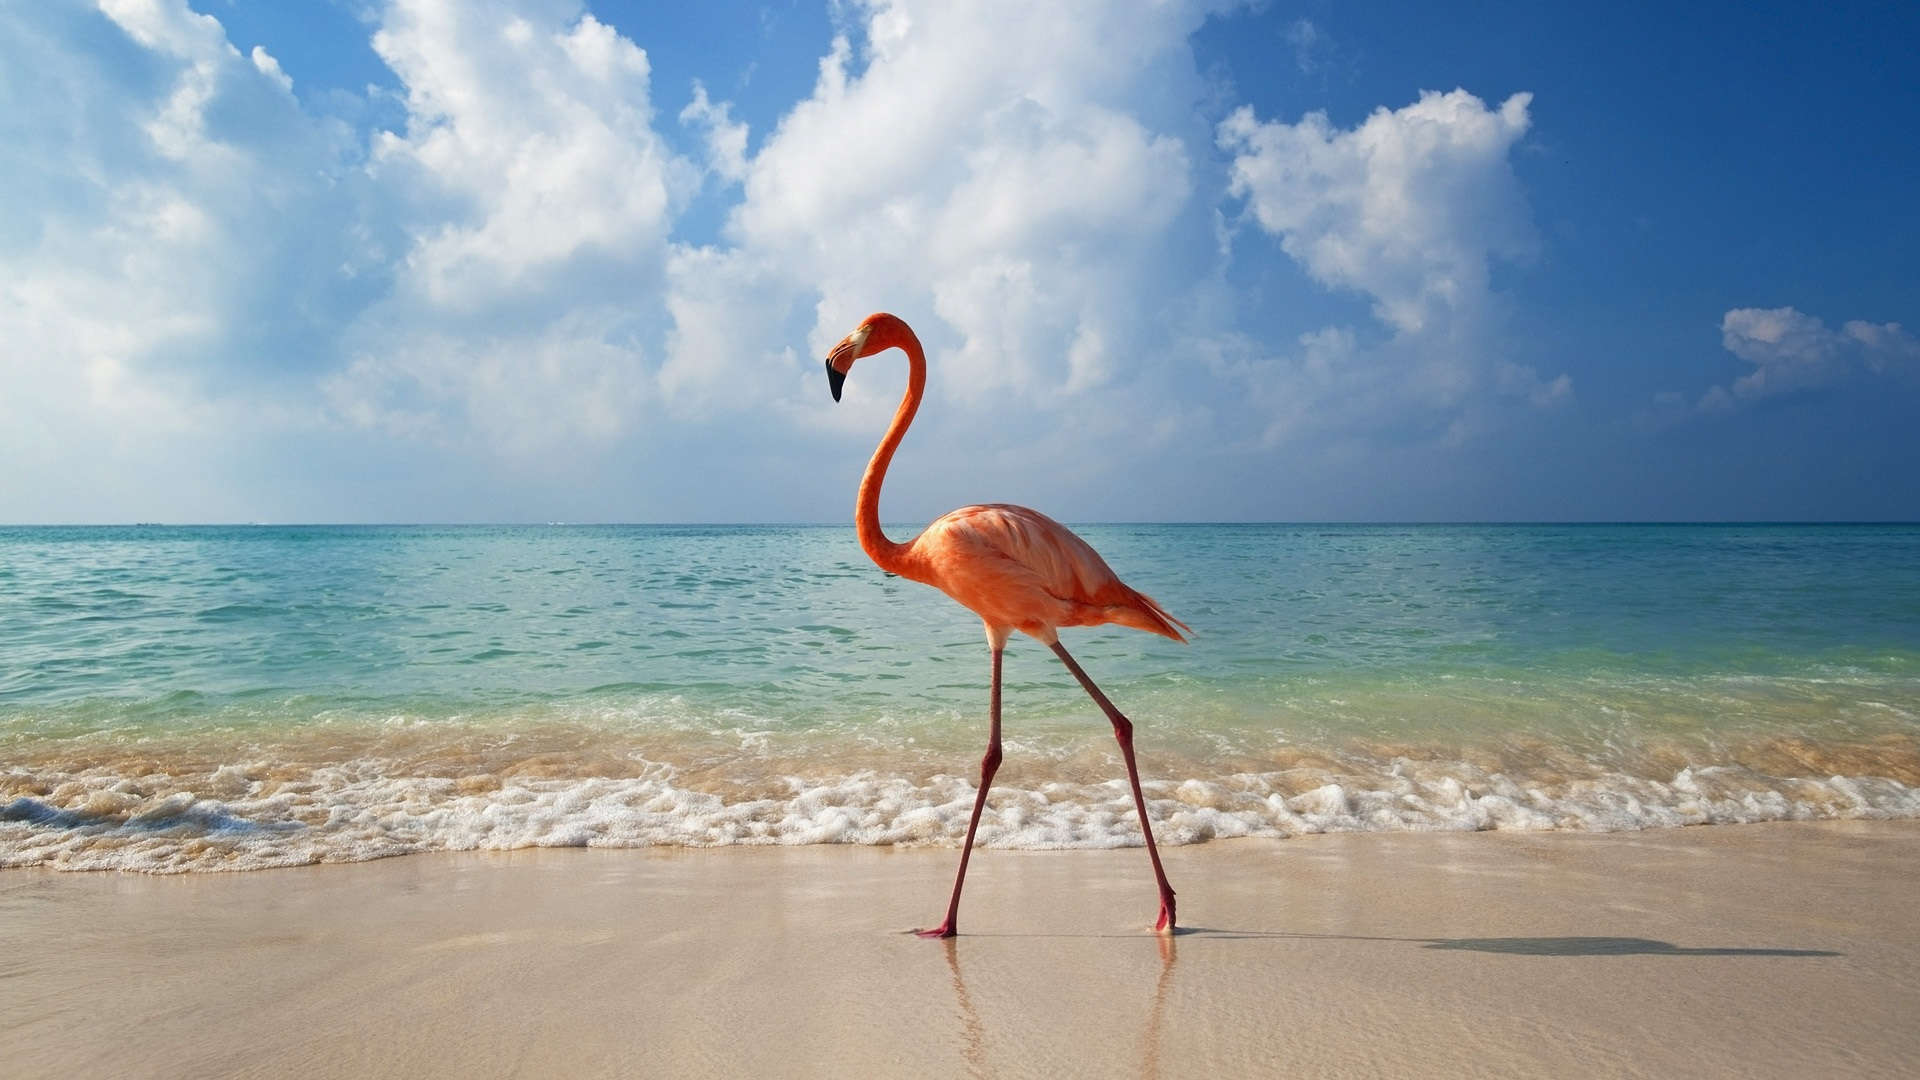 A-flamingo-beach_1920x1080